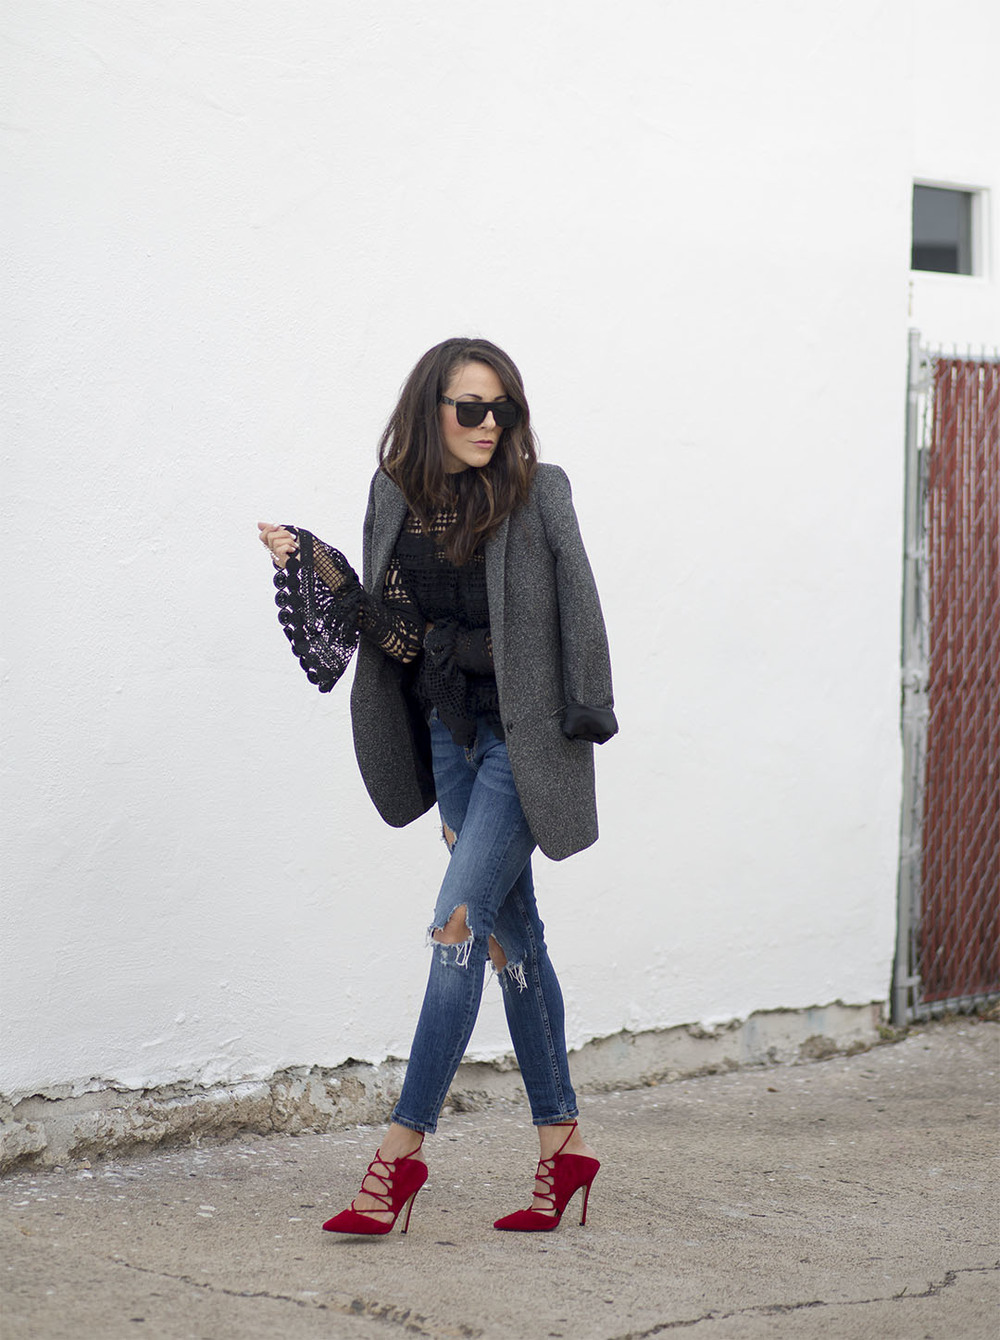 Ministry-of-Style-Topshop-Zara-Fashion-Blogger-Streetstyle-Lucys-Whims-SanDiego.jpg